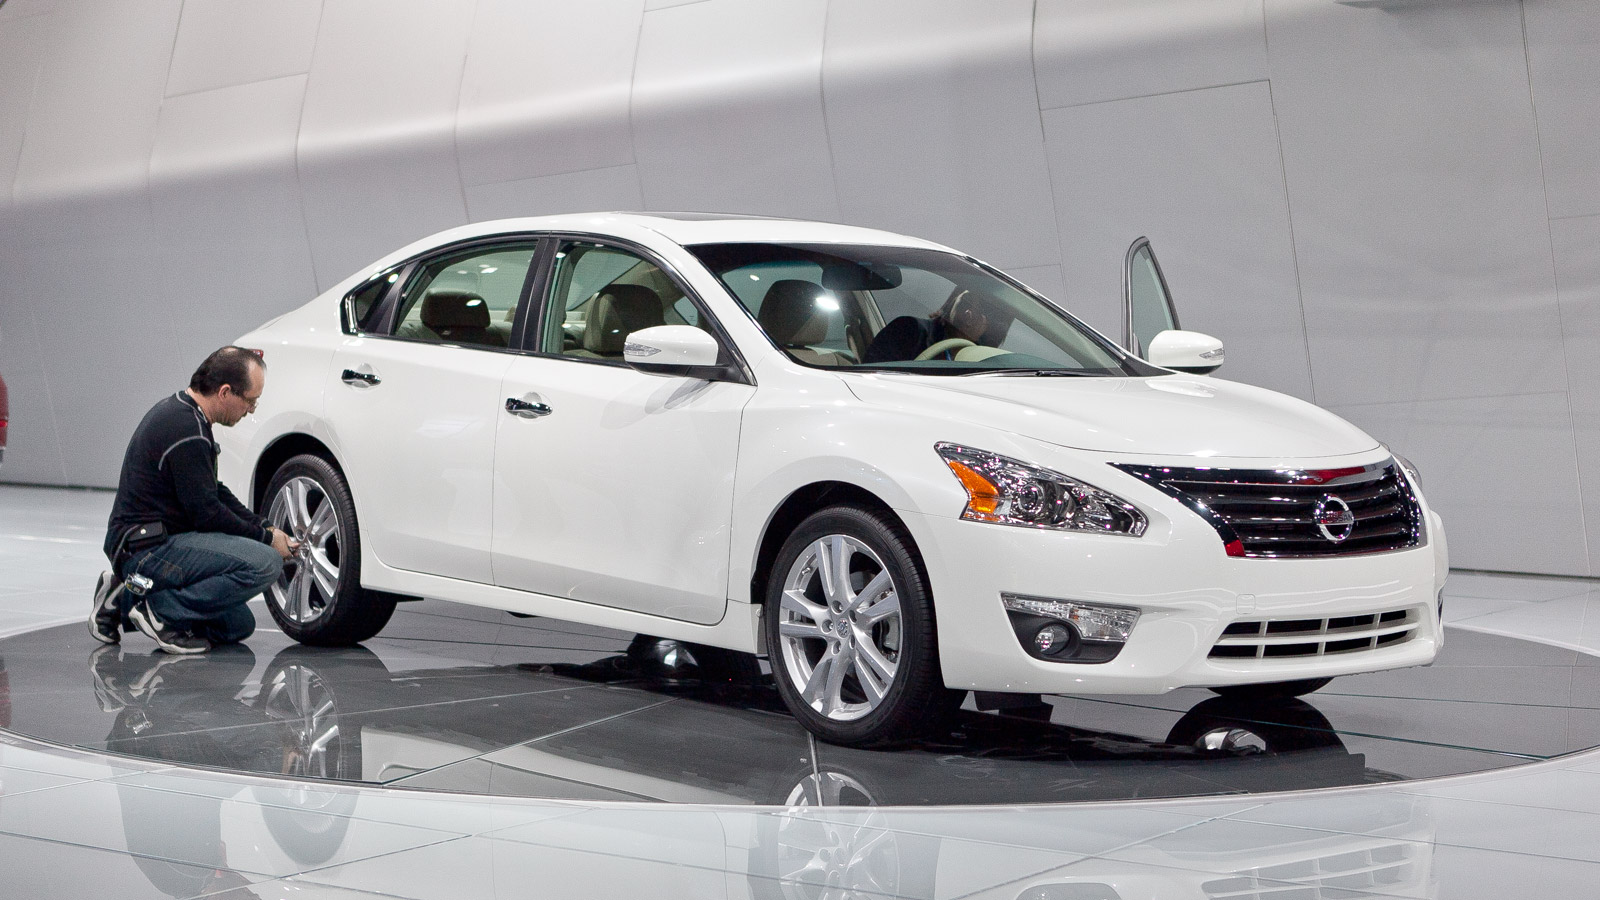 2013 nissan altima coupe 2013 nissan altima c2013 nissan altimaoupe review photo and price. Black Bedroom Furniture Sets. Home Design Ideas